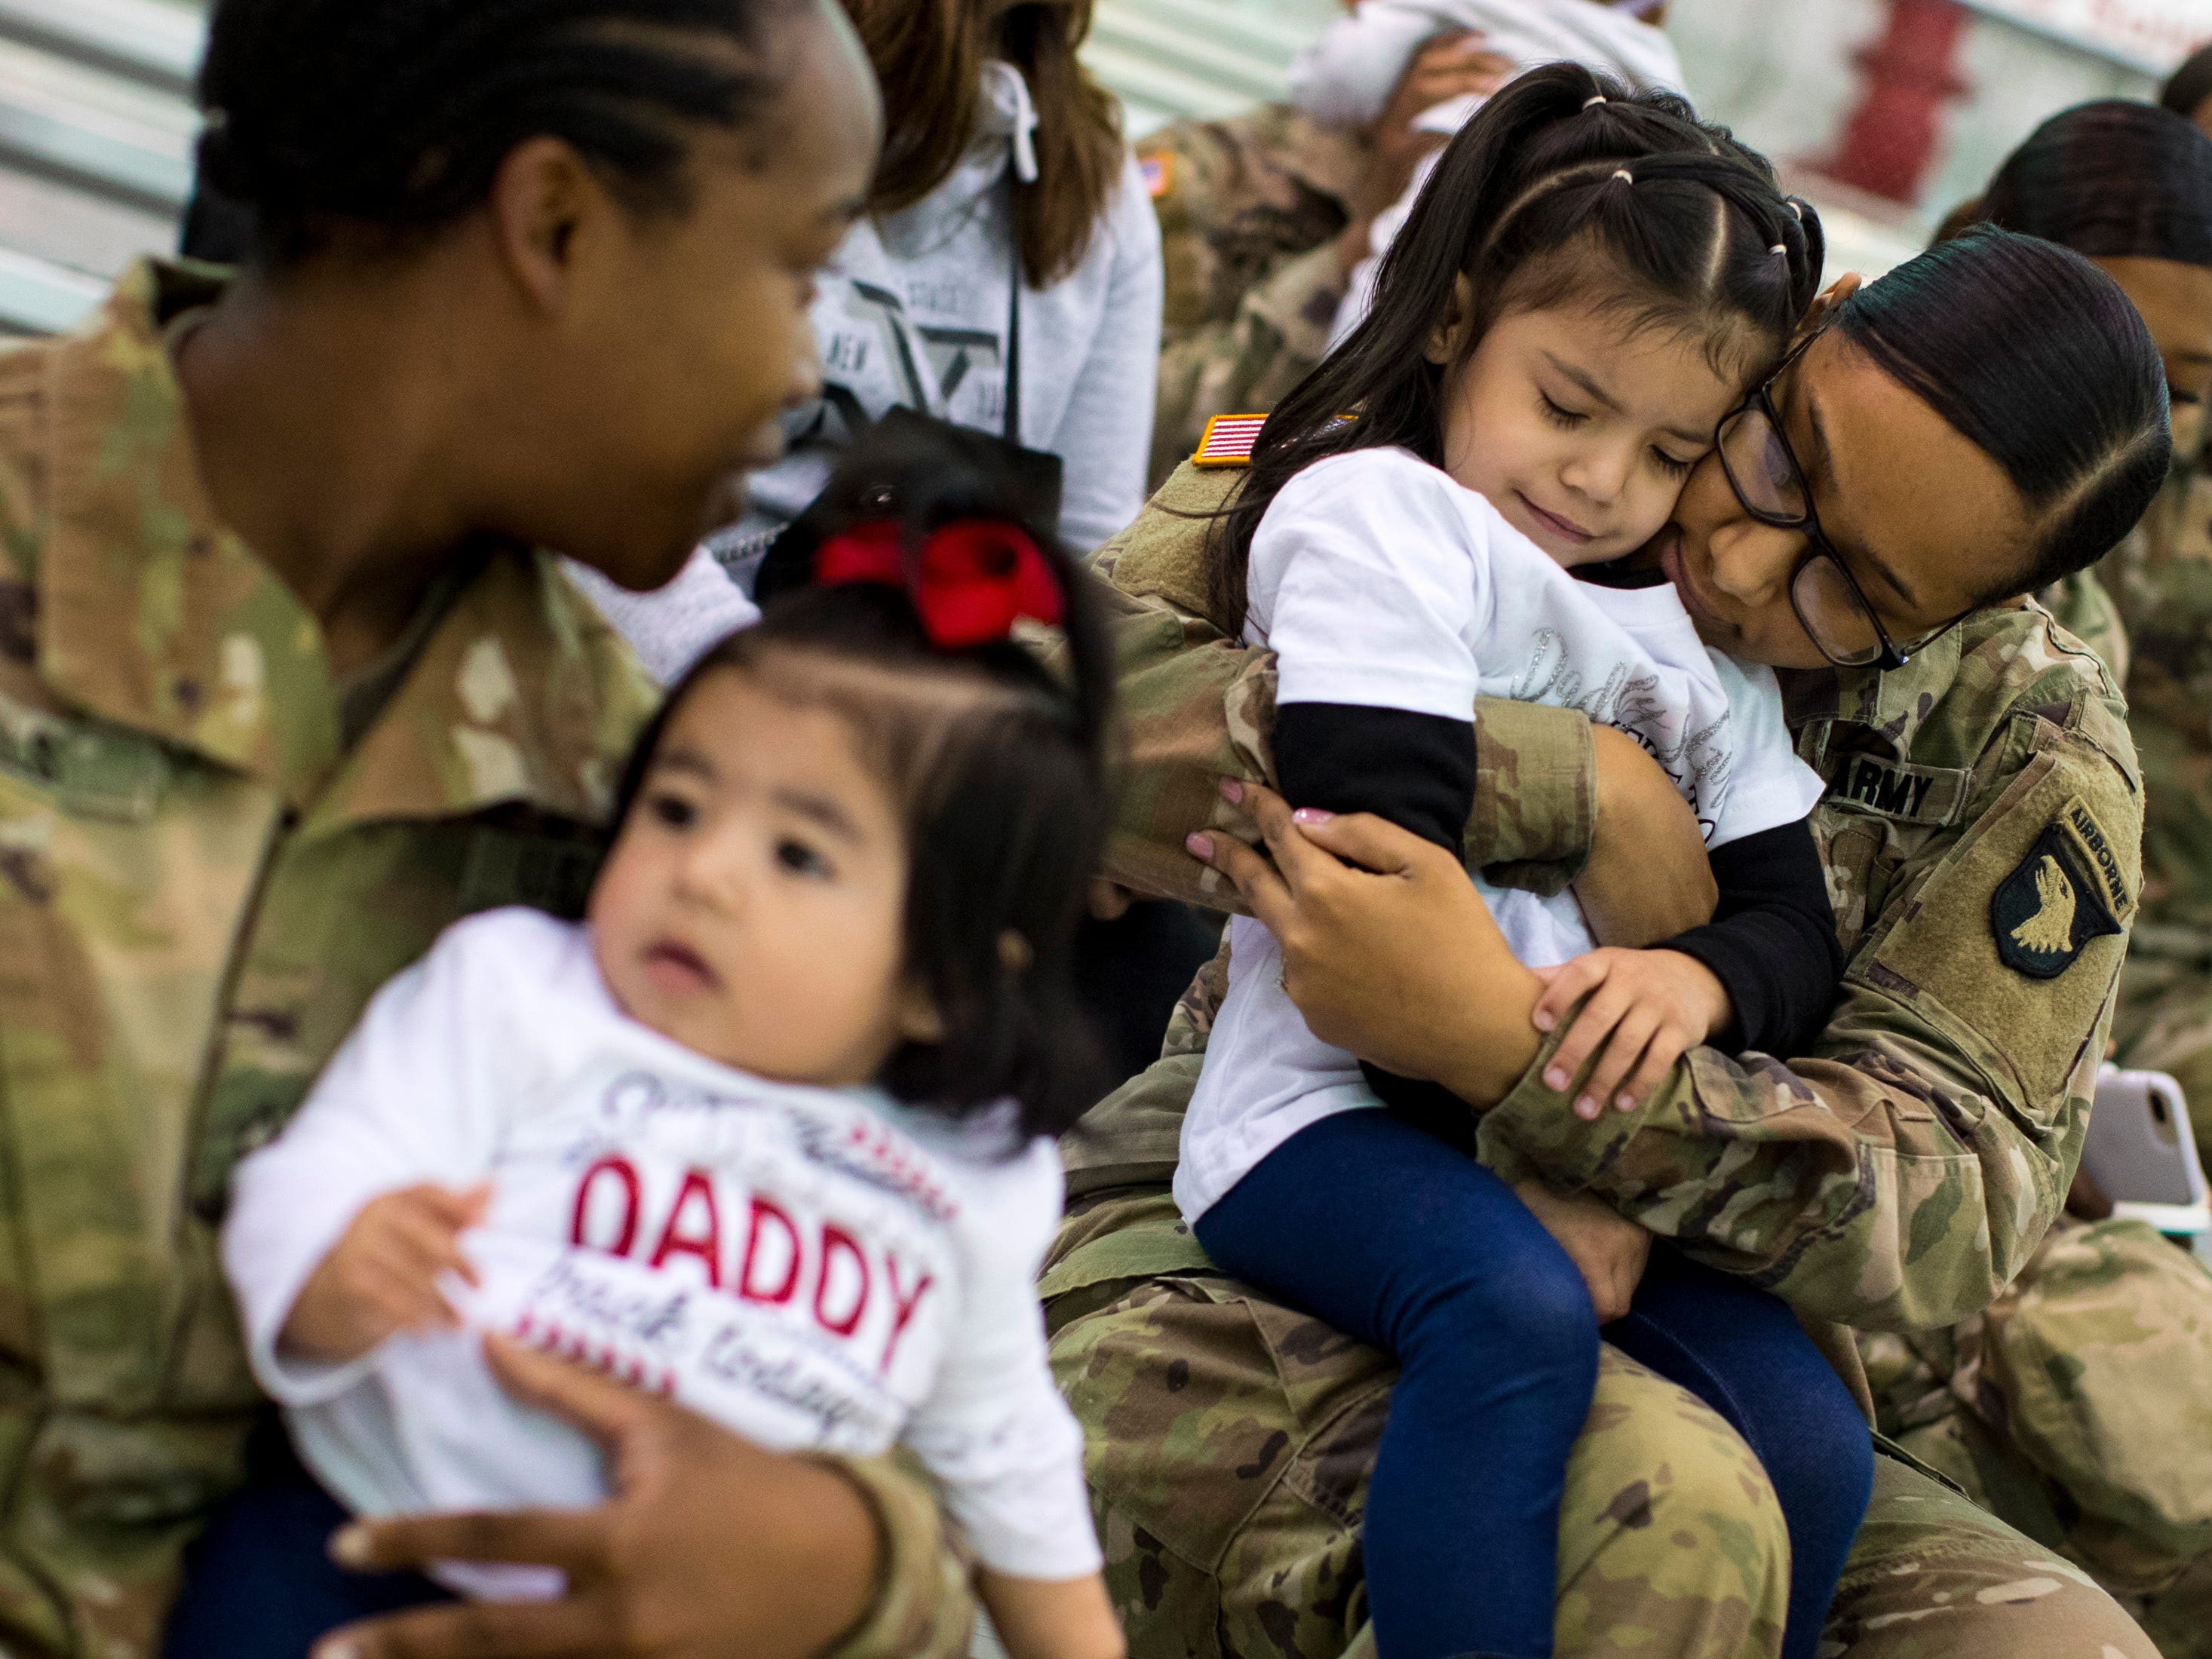 Private First Class Laura Davis holds Aliyah Barajas, 3, as Private First Class Taneka Daniels holds Eliana Barajas, 8 months, during the welcome home ceremony for members of the 101st Combat Aviation Brigade at Fort Campbell in Clarksville on Tuesday, Feb. 5, 2019. The soldiers were returning from a nine-month deployment to Afghanistan.